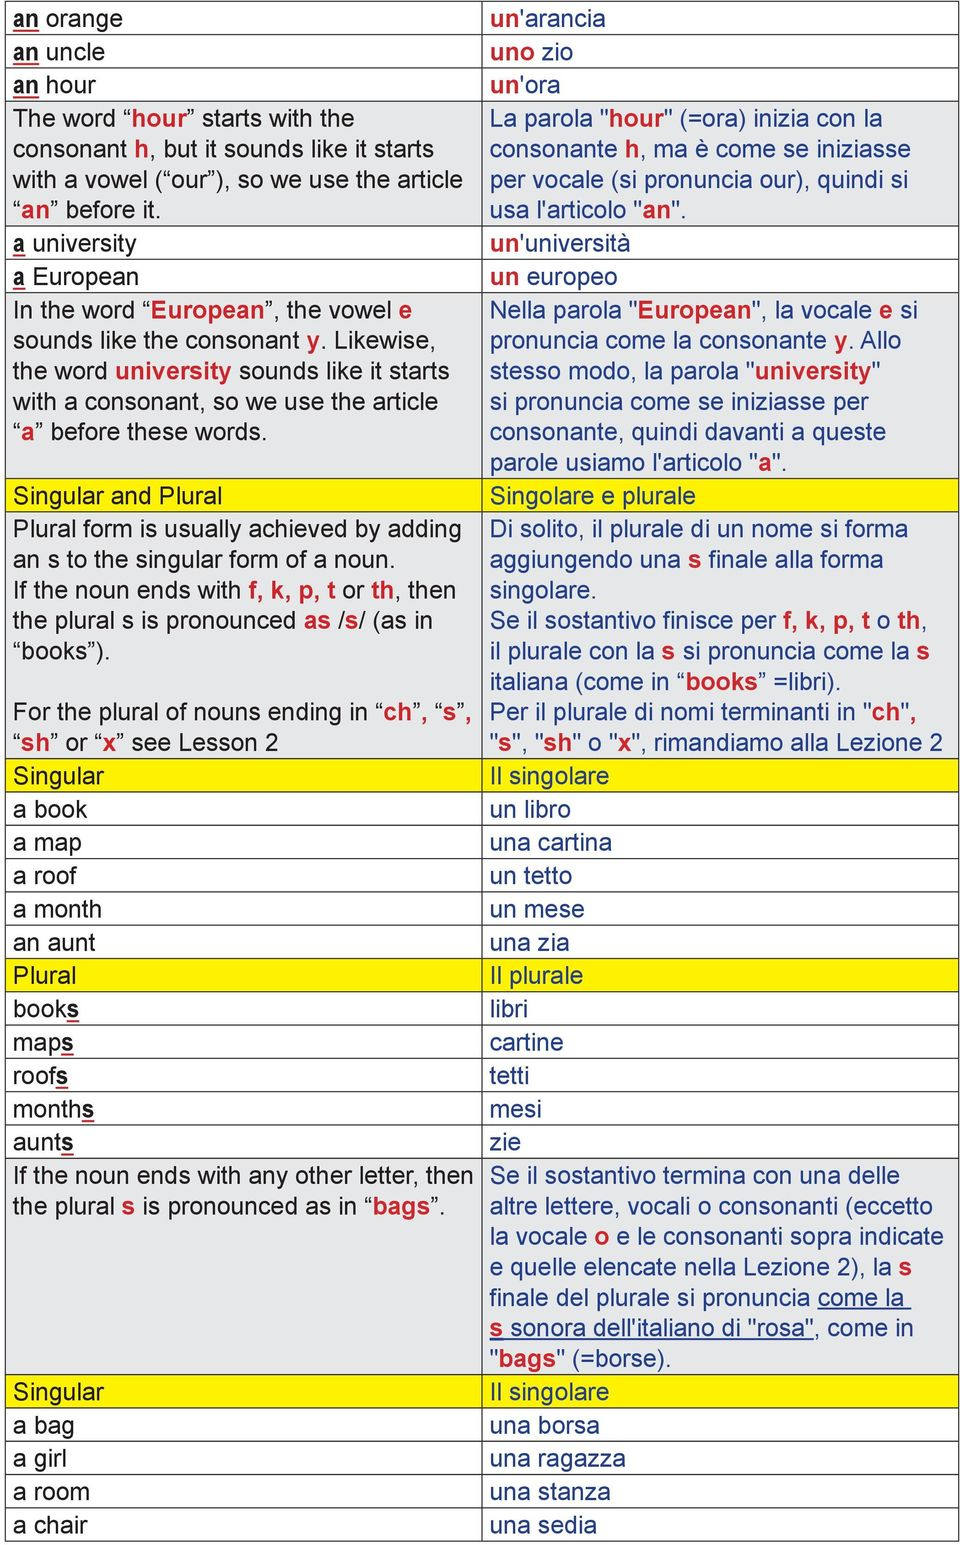 Singular and Plural Plural form is usually achieved by adding an s to the singular form of a noun. If the noun ends with f, k, p, t or th, then the plural s is pronounced as /s/ (as in books ).